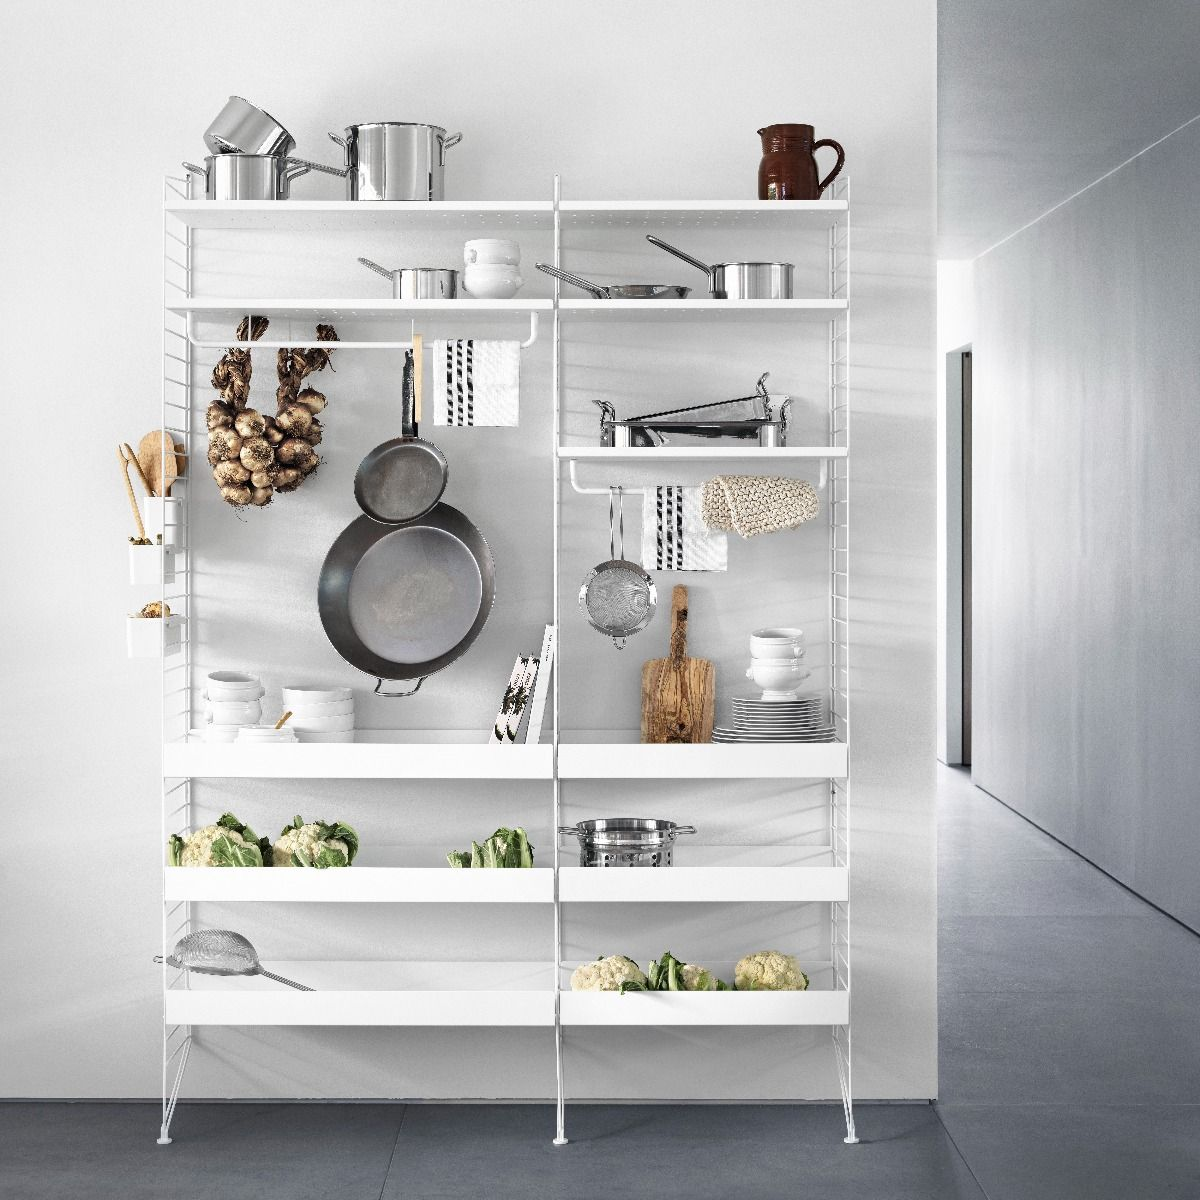 String metal shelves 78 x 30, white in kitchen system with 2m floor panels